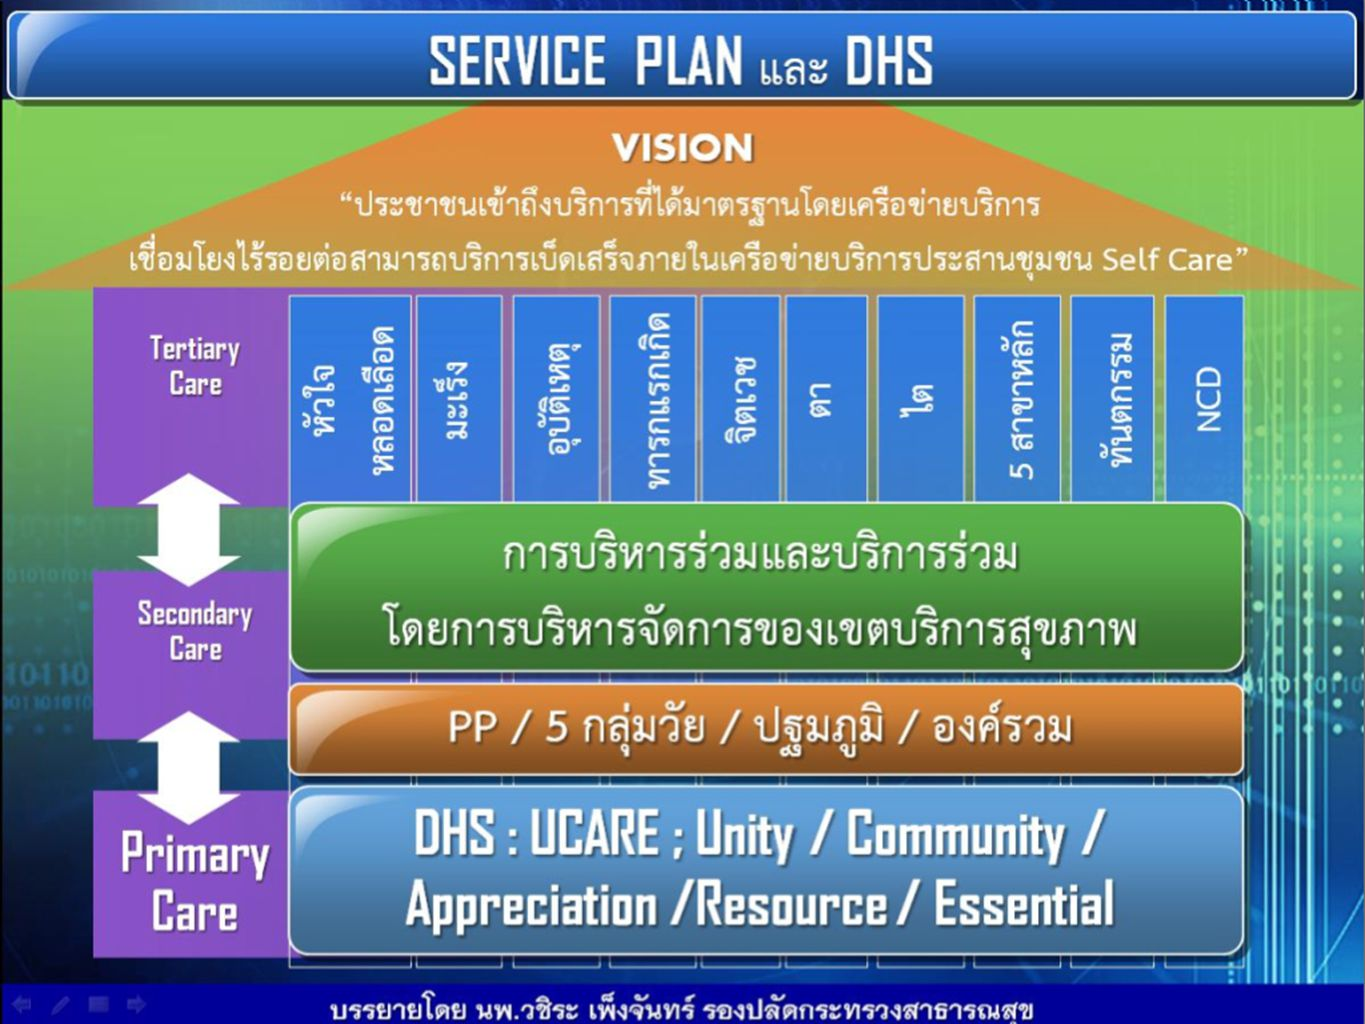 Basic function from world health report 2000 Framework for action from WHO 2007 6 Building blocks